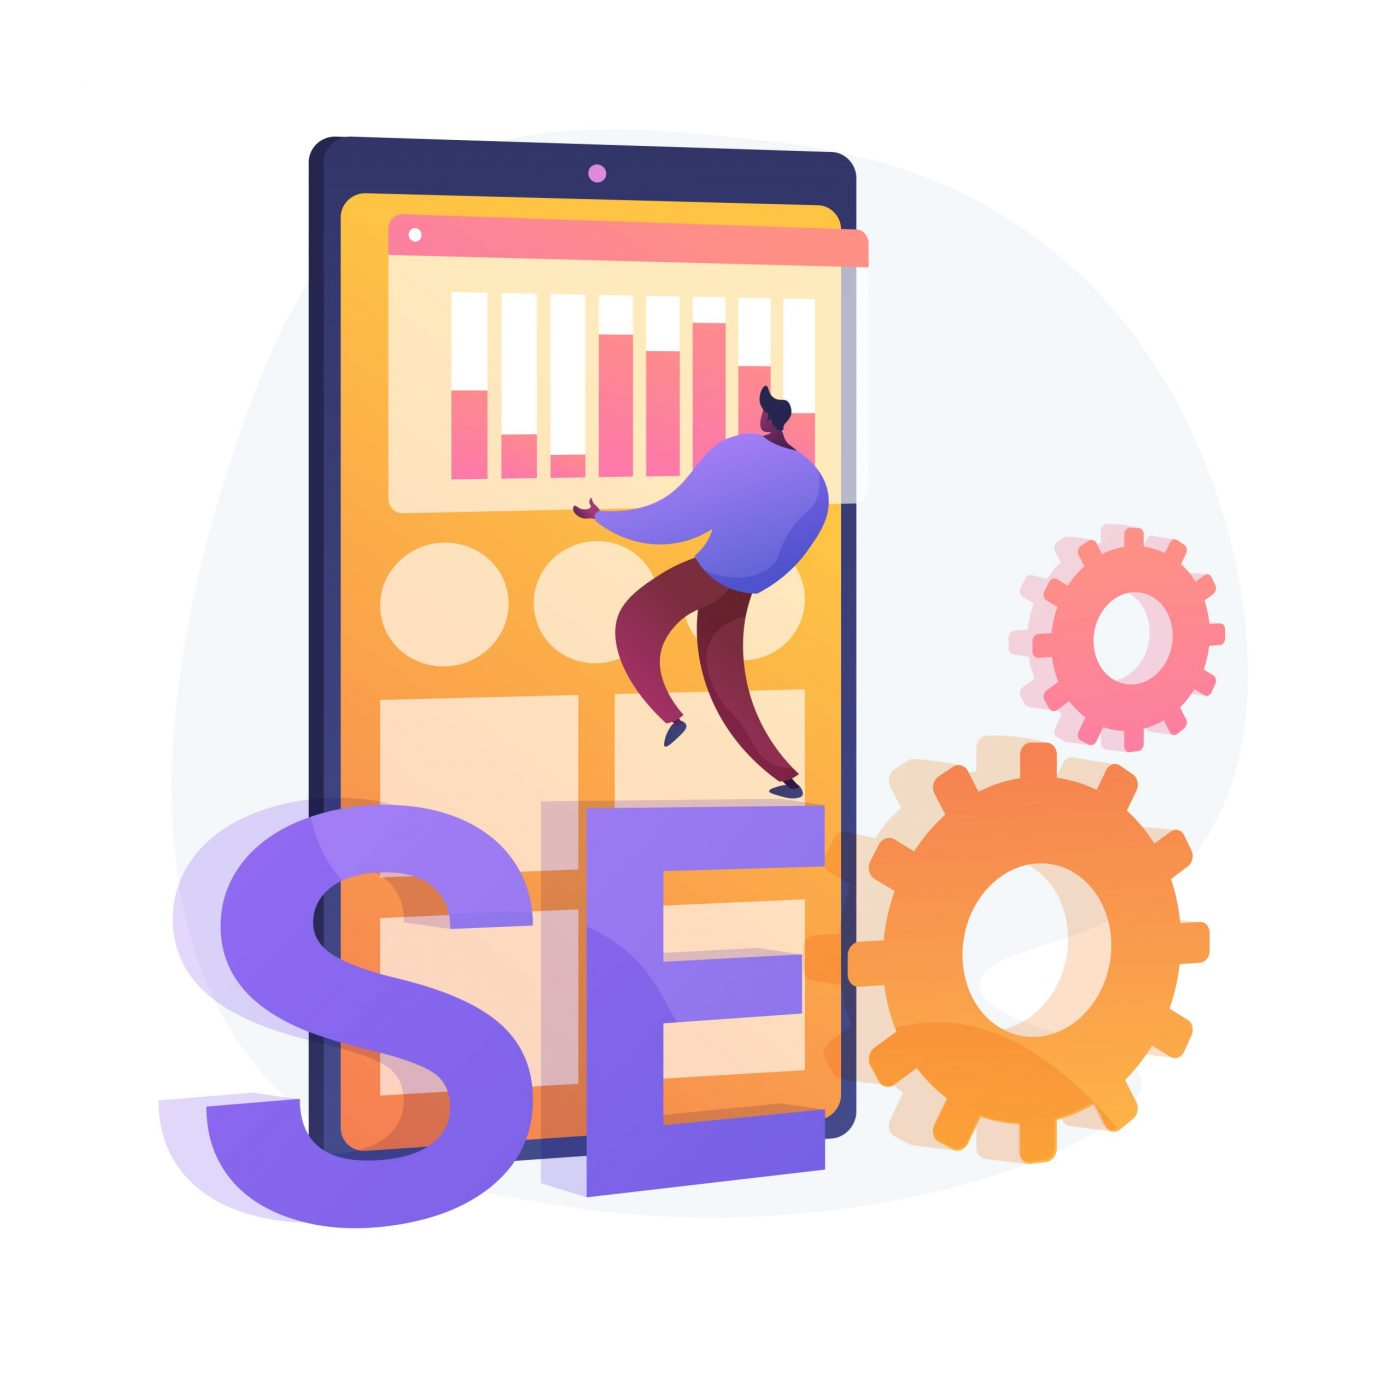 seo services india, best seo company in india,seo expert in india, top seo company in india, seo services in noida, best seo services in india, affordable seo services india, best seo agency in india,